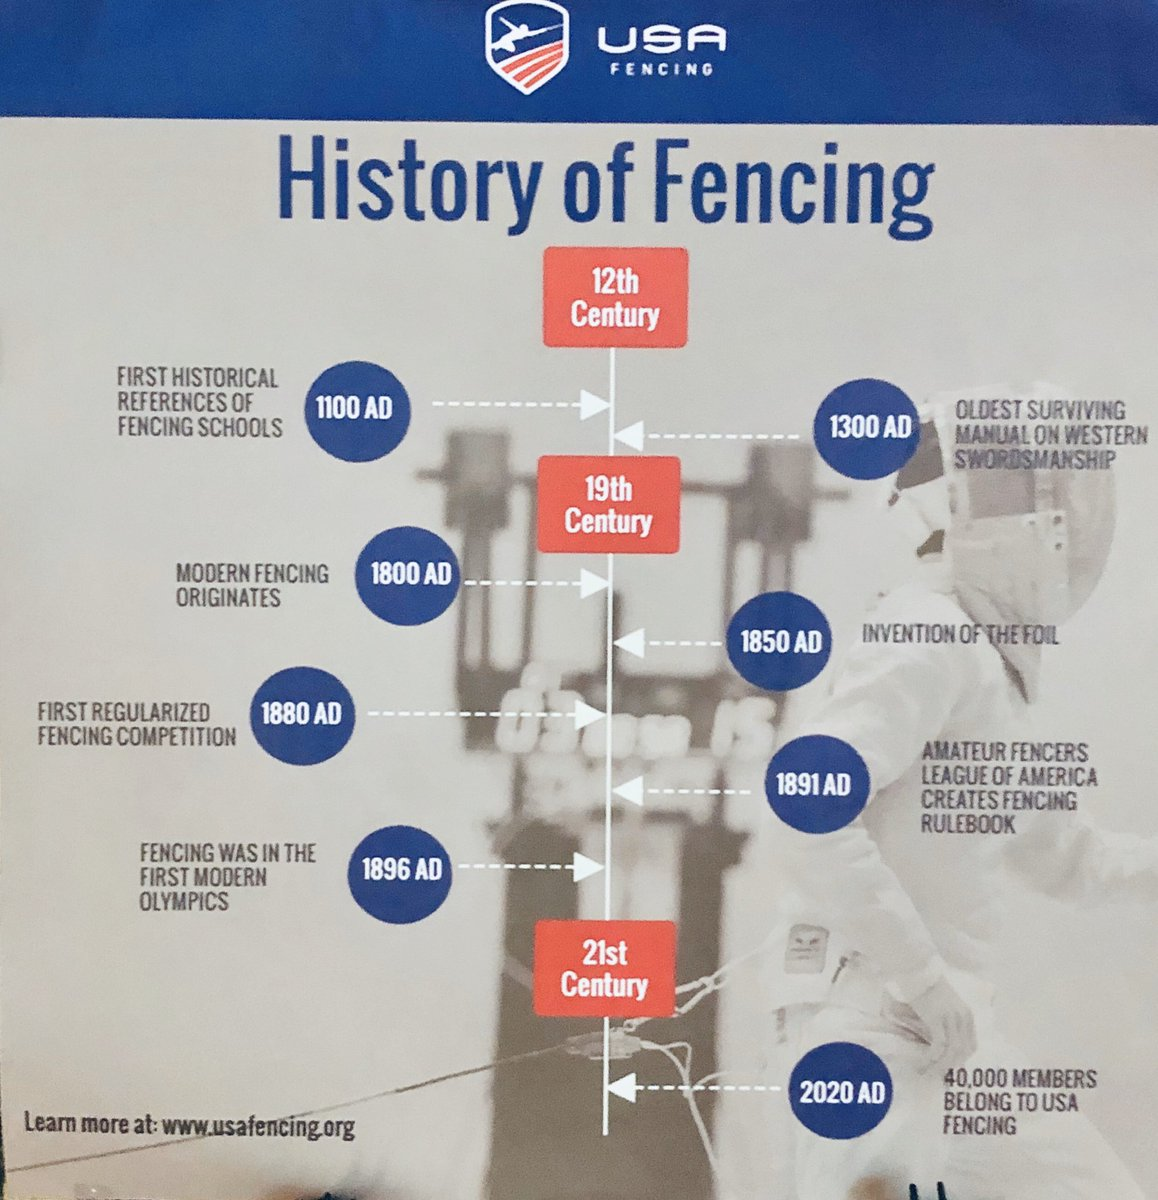 Ever wonder how modern fencing began? #usafencing pic.twitter.com/VKsd0jpUYl